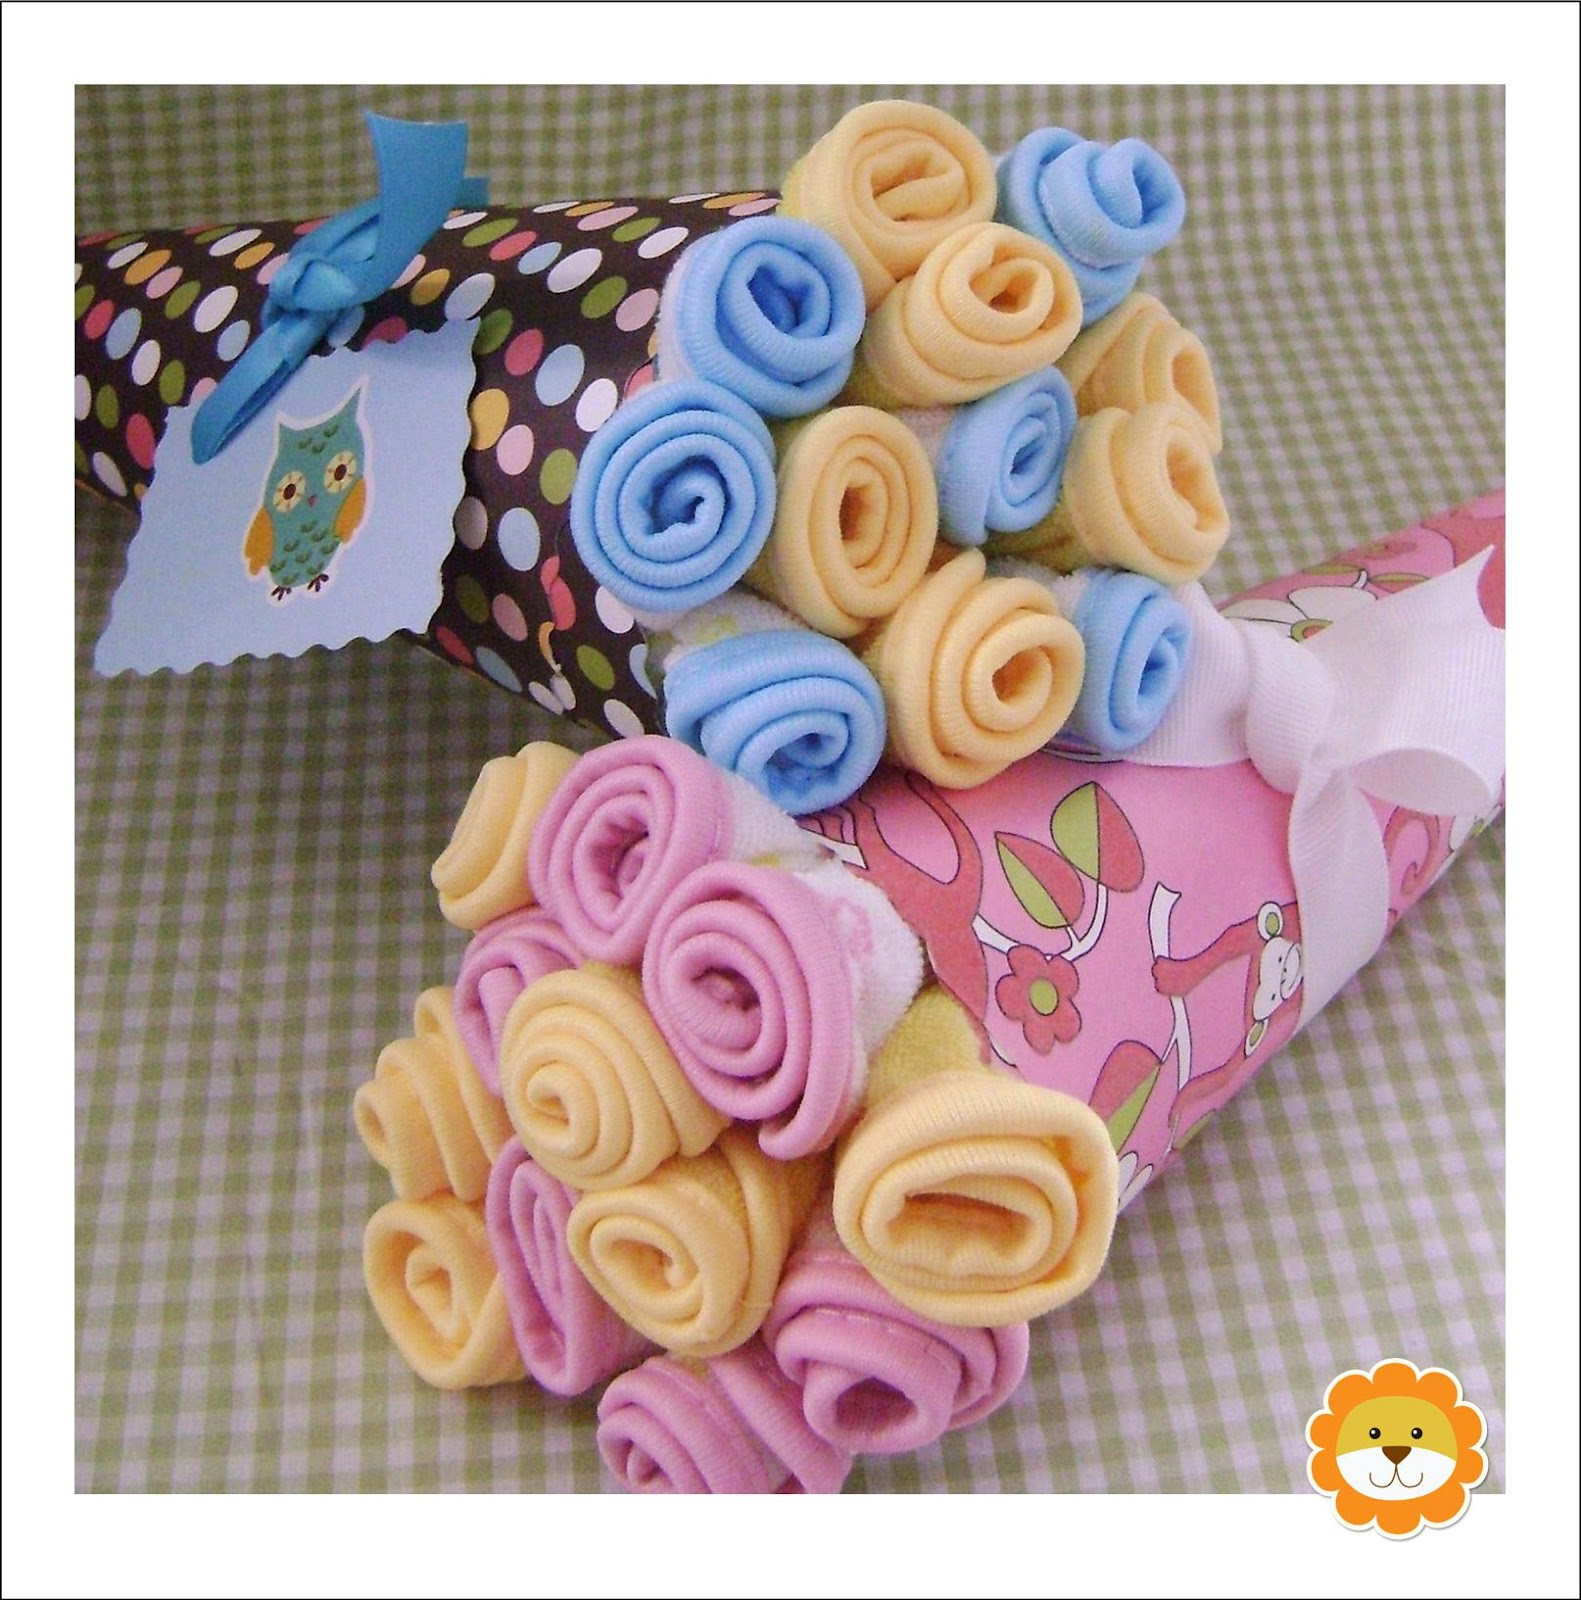 Best ideas about Babyshower Gift Ideas . Save or Pin It s Written on the Wall Cute Ideas for Your Baby Shower Now.